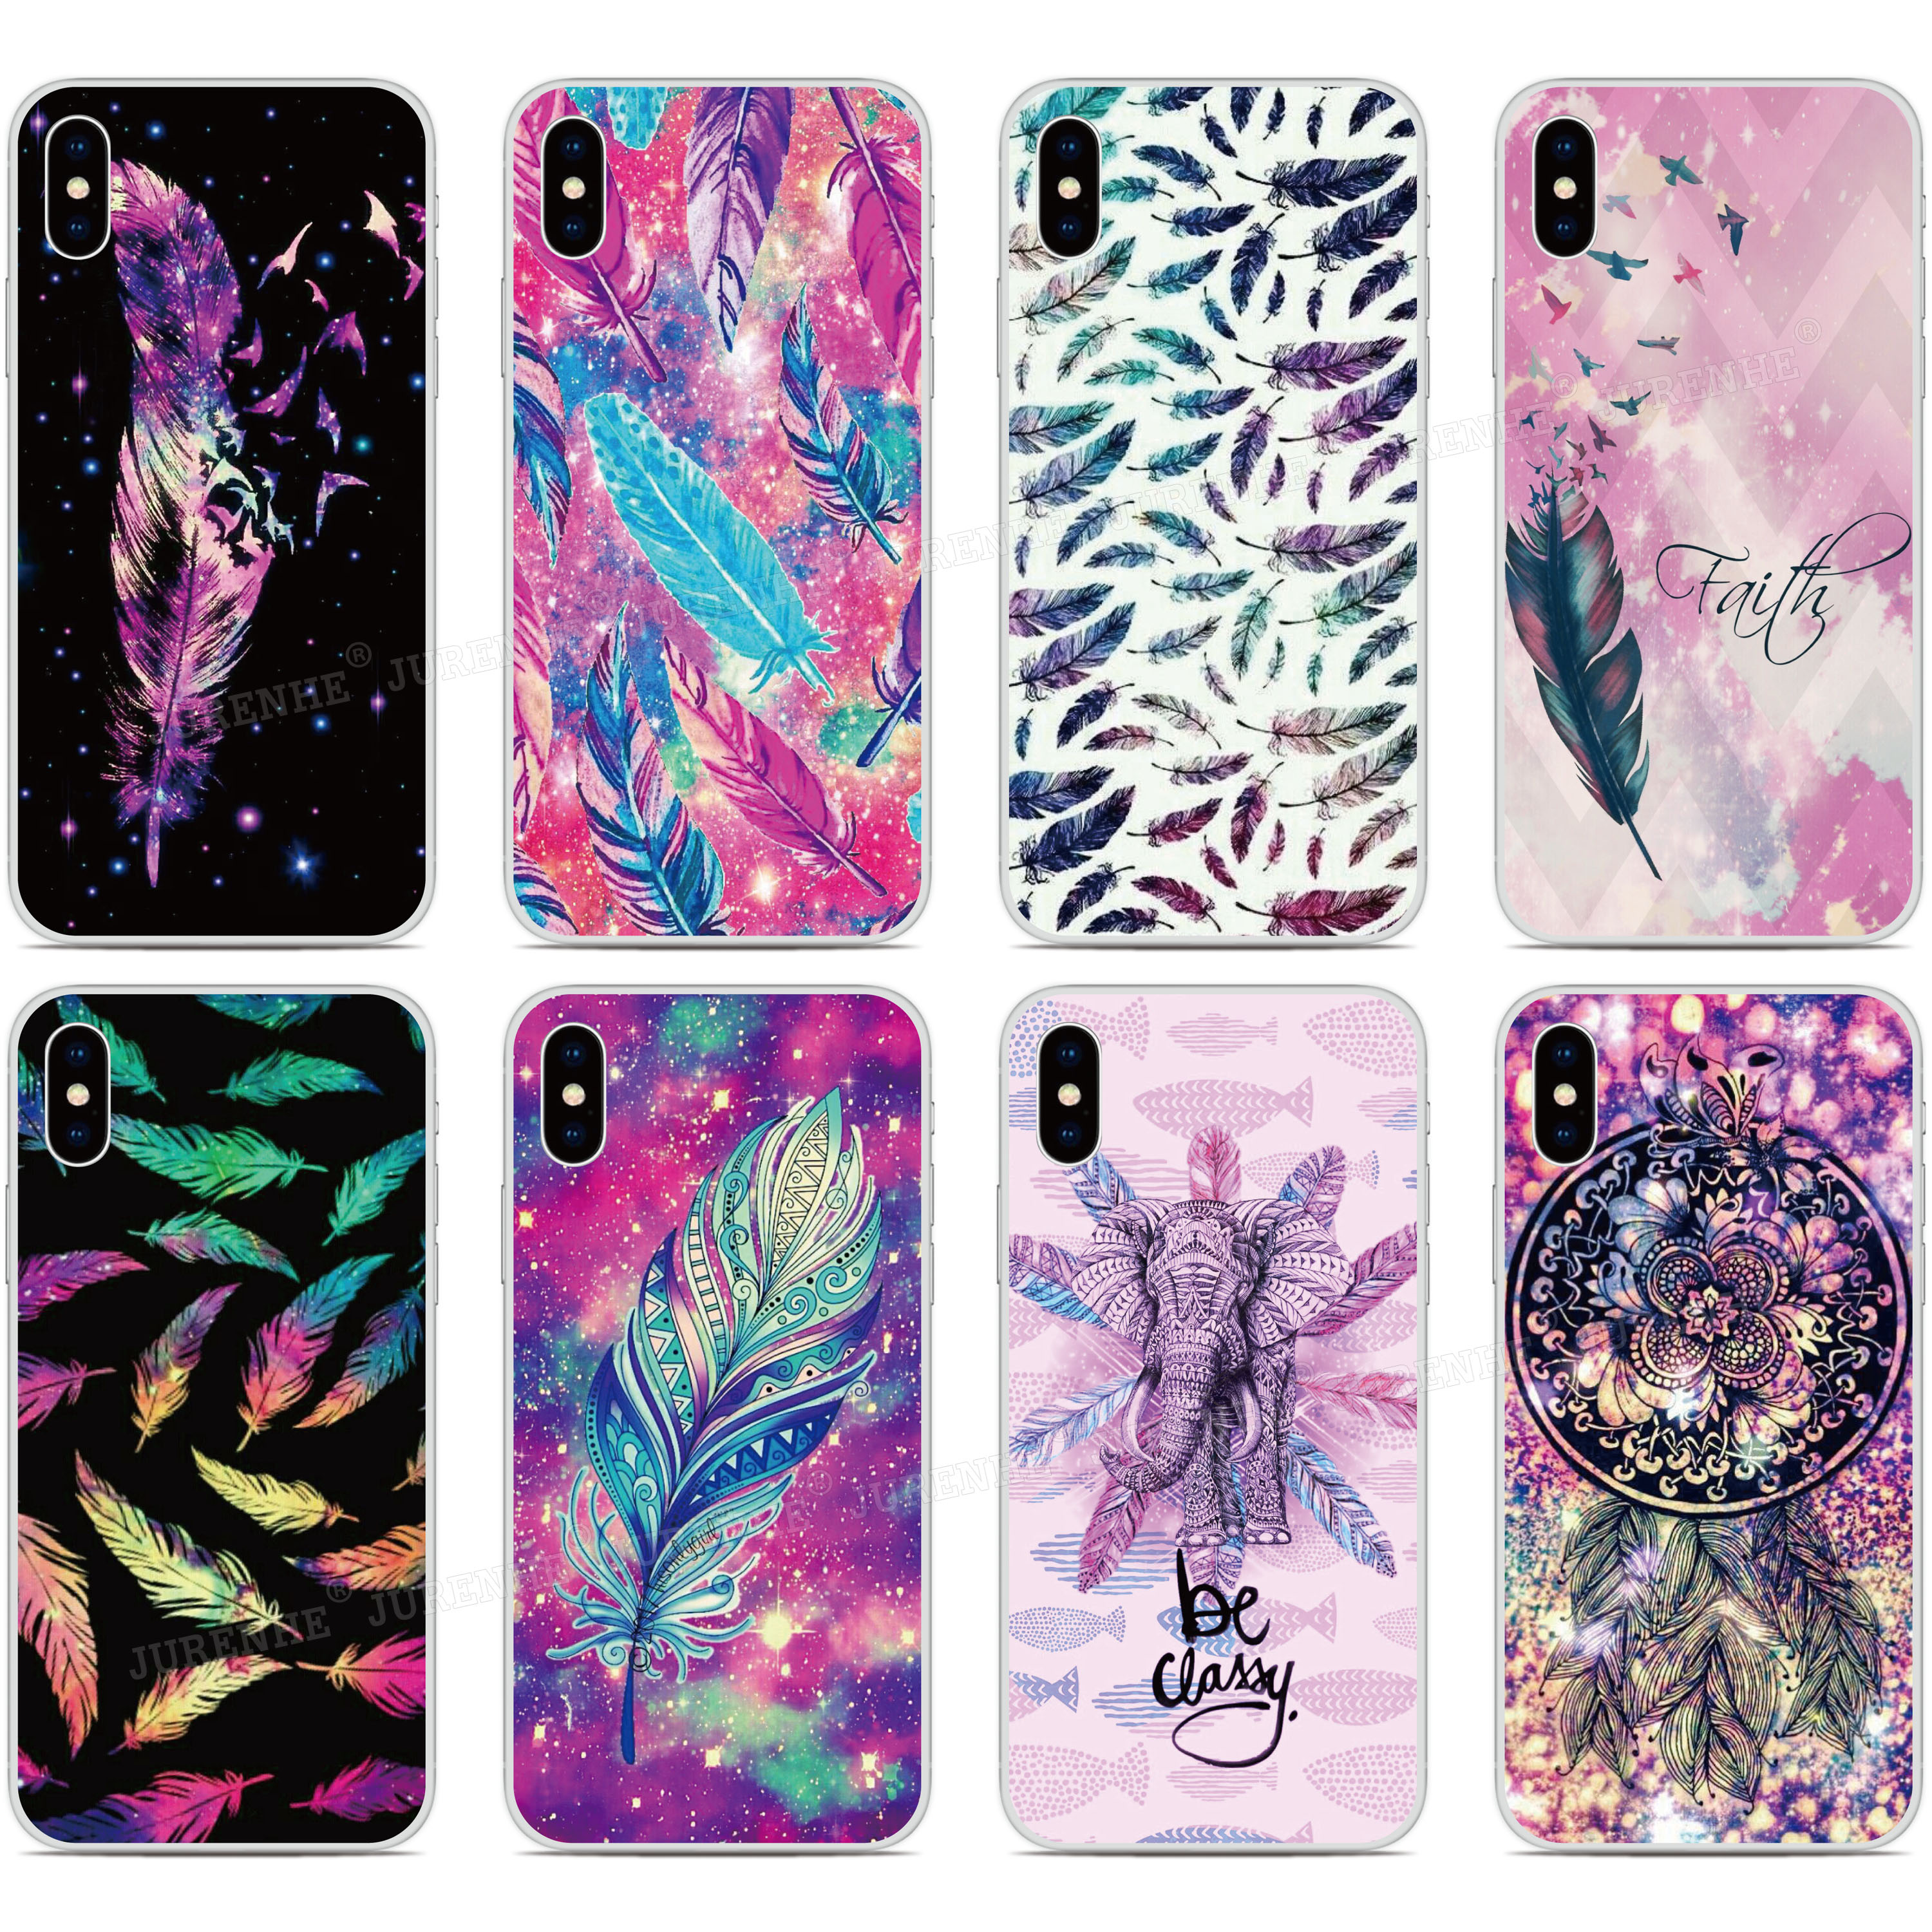 Colorful Feather Funda Phone Case For BQ Aquaris M5 E5 E6 M5.5 X5 Plus For Blackberry Z10 Z30 Q10 For Nokia Lumia 520 930 Cover(China)